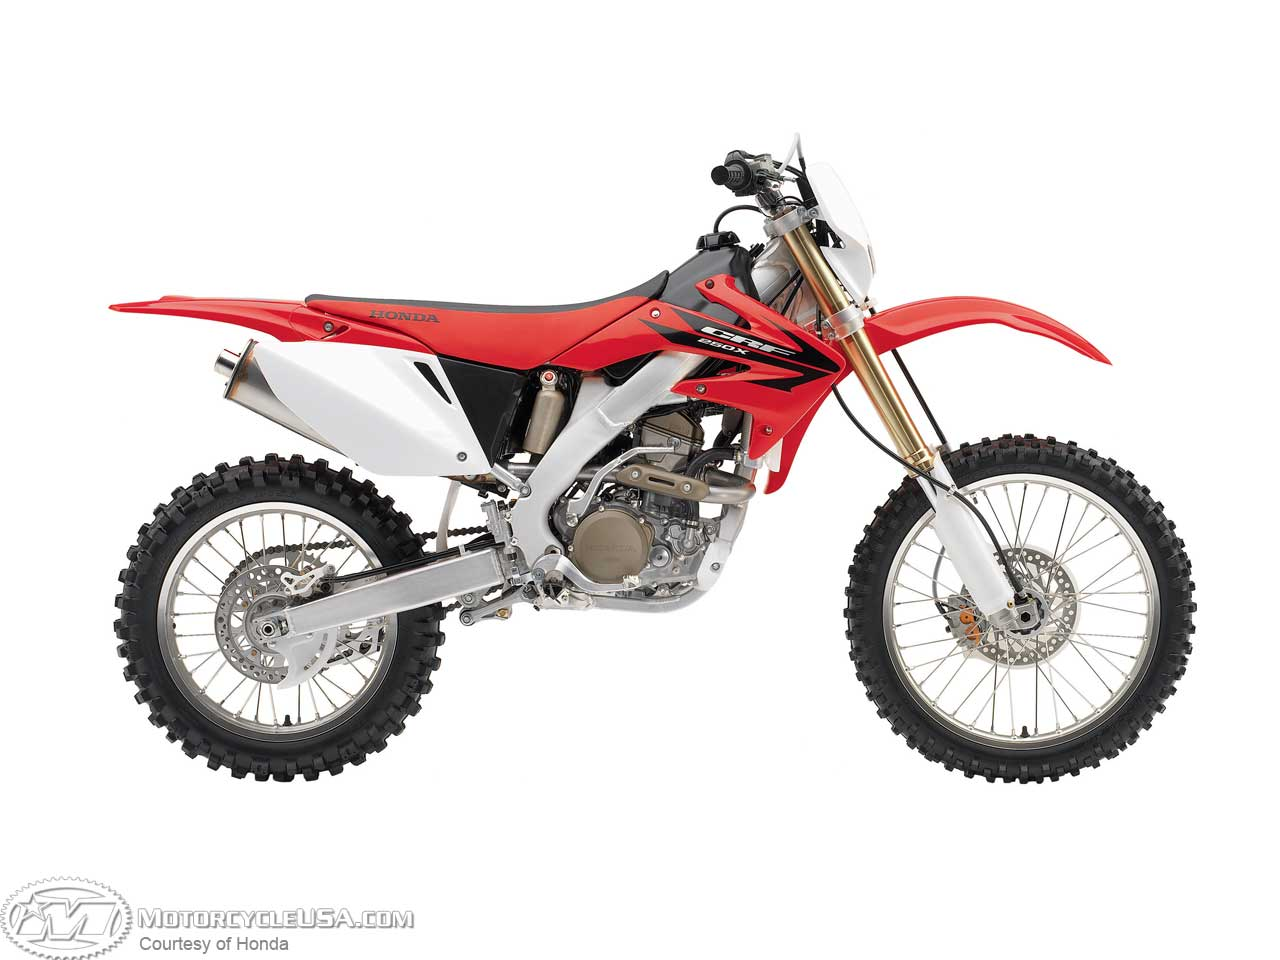 2006 honda crf 250 x pics specs and information for Wohnlandschaft 250 x 200